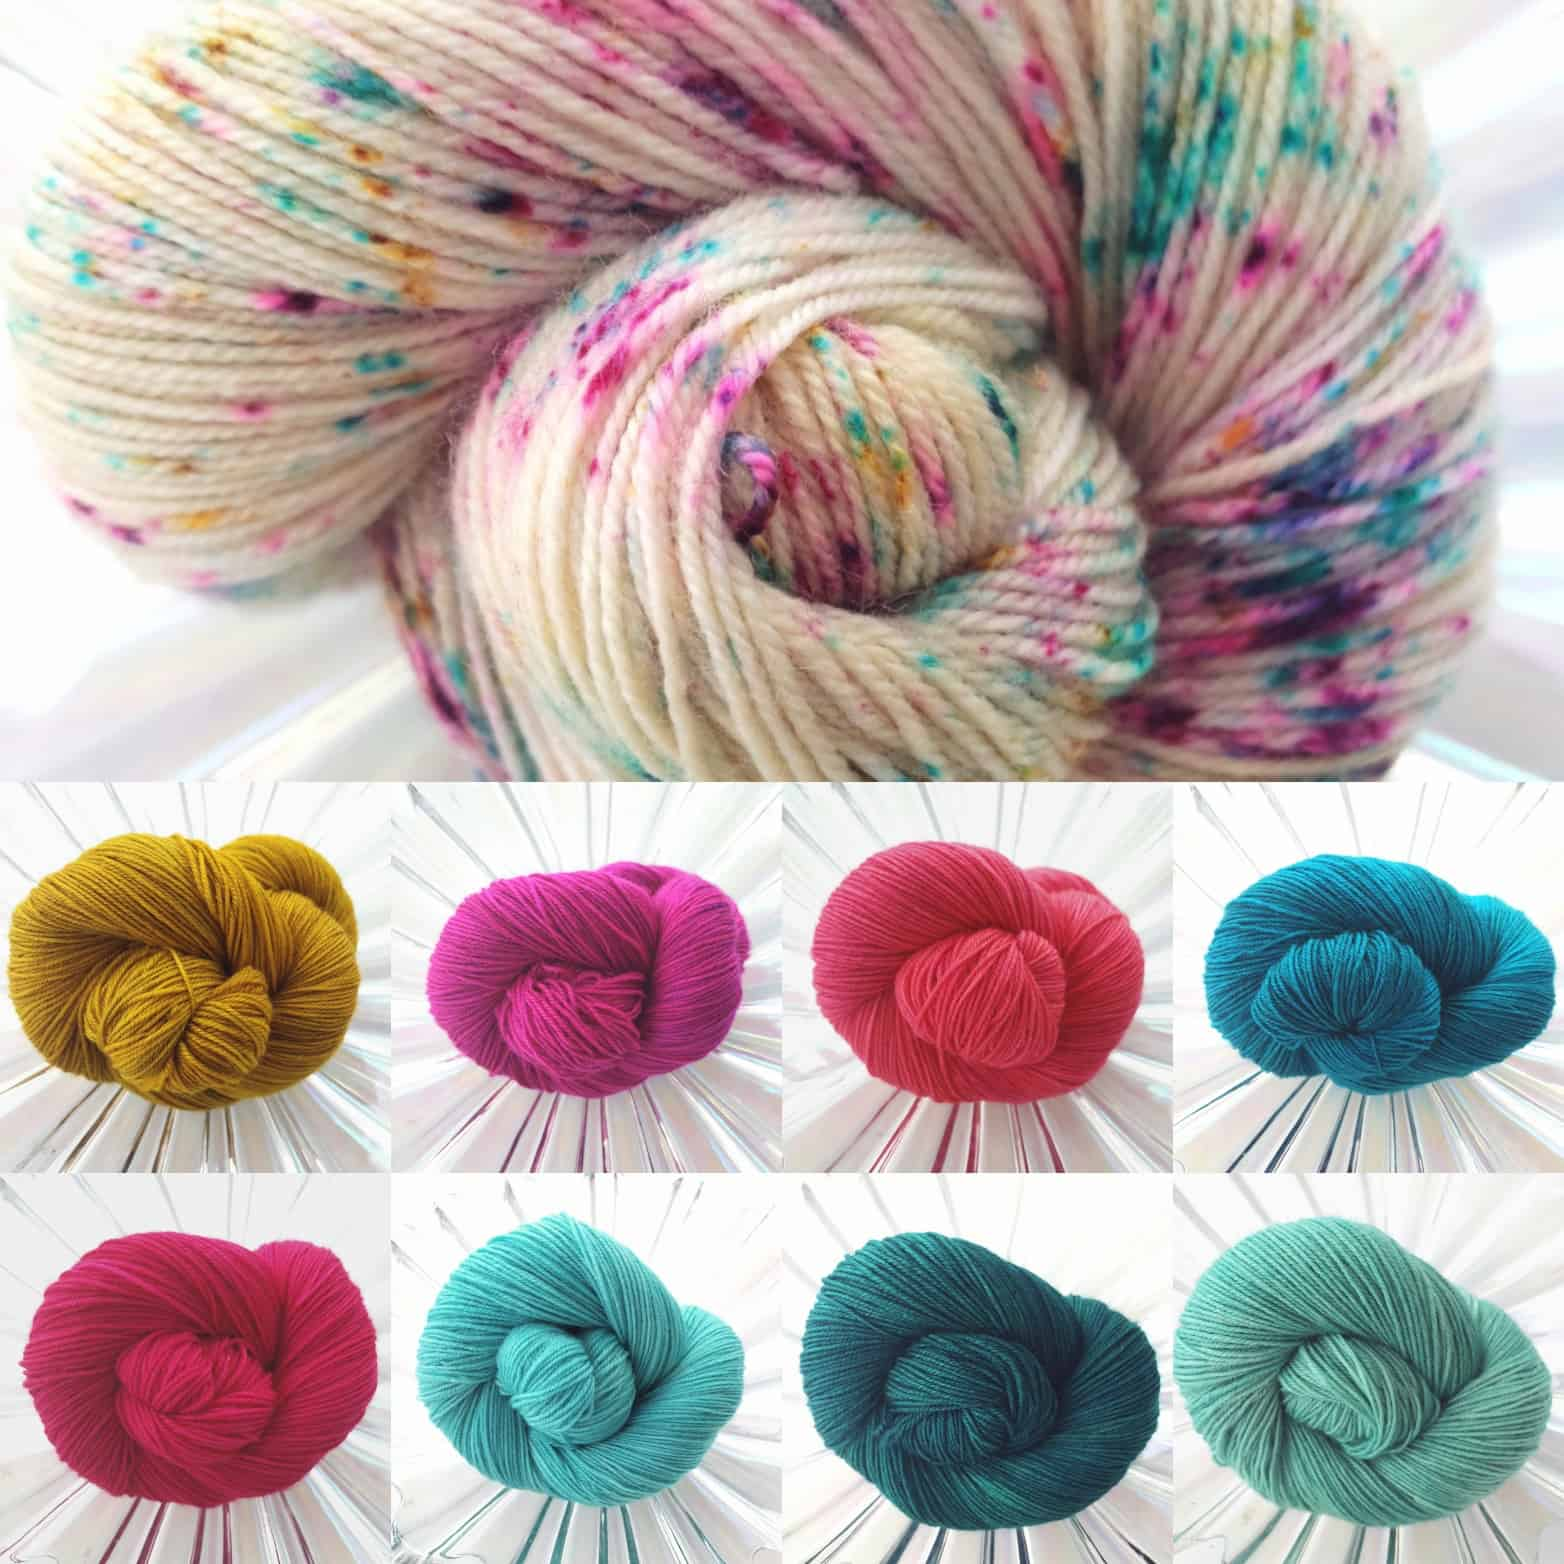 A white yarn speckled with gold, pink, teal and aqua and corresponding coiled skeins of yarn.